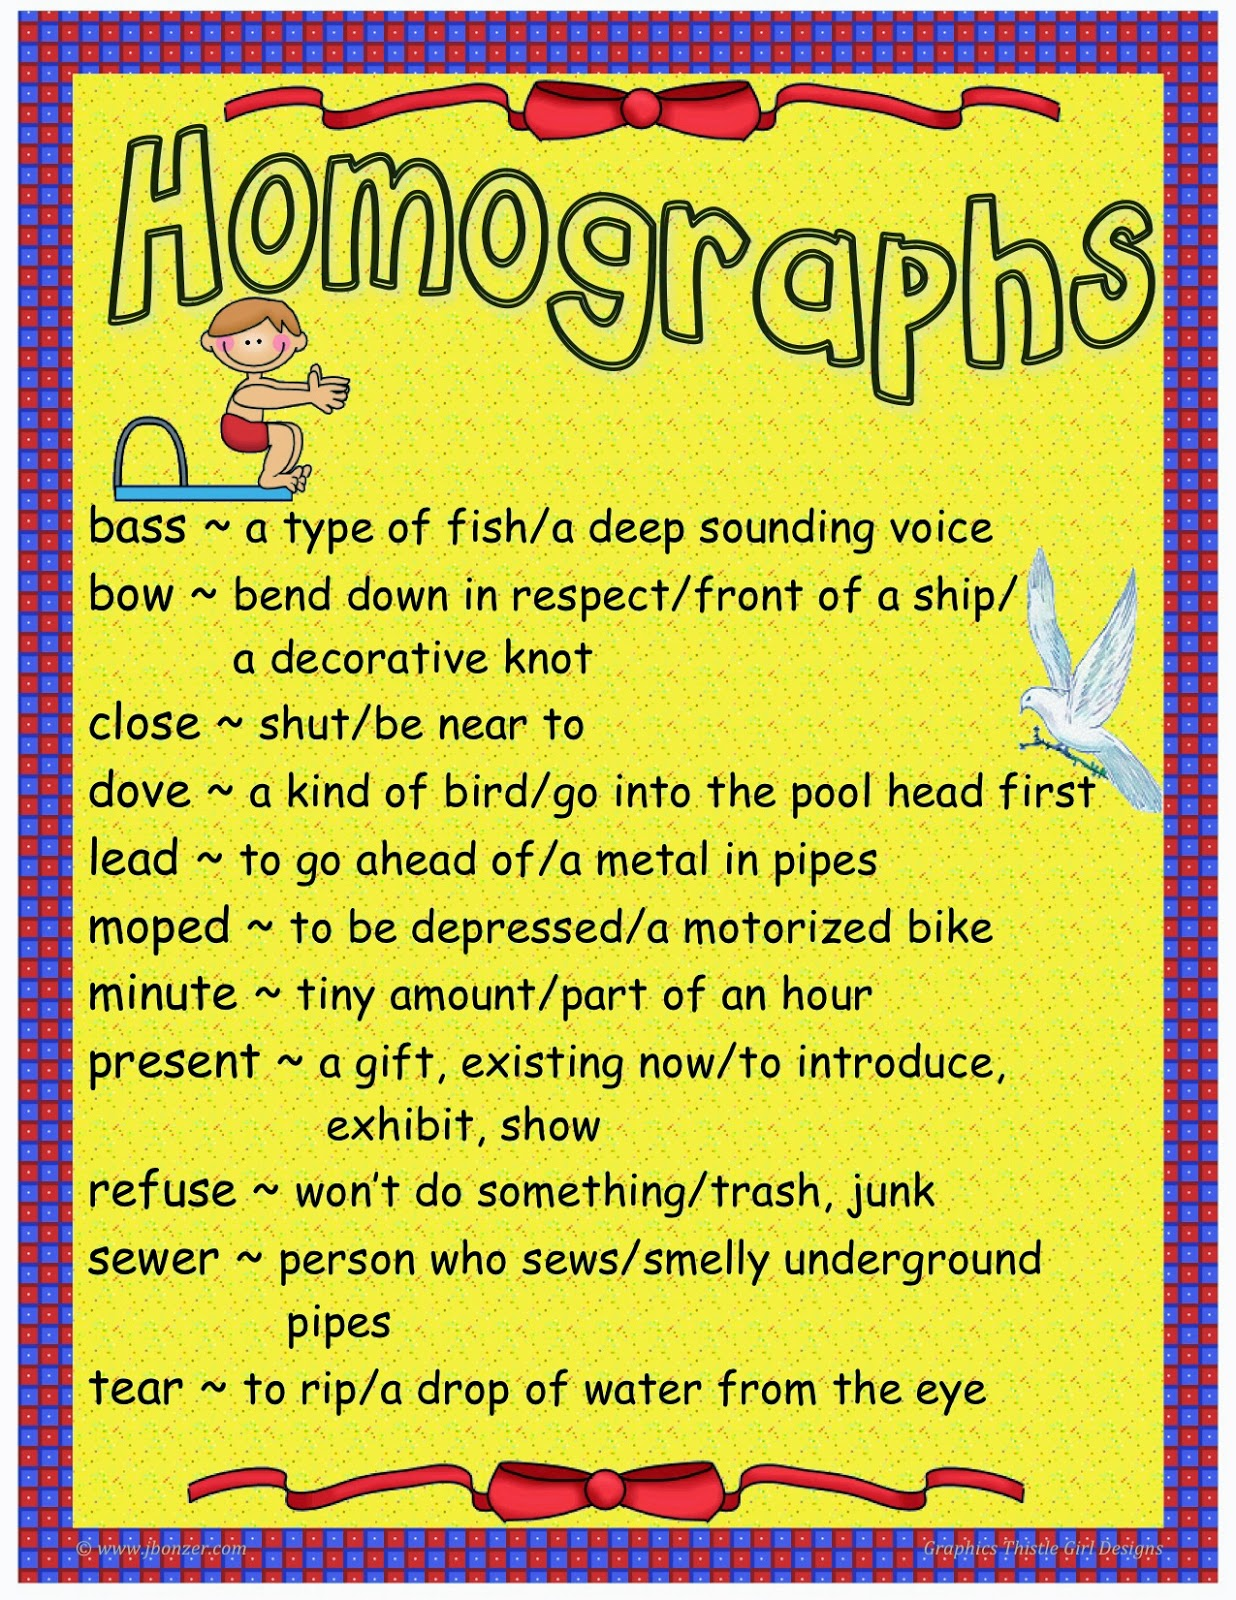 Wise Wednesday Grammar Homographs Native English Spain